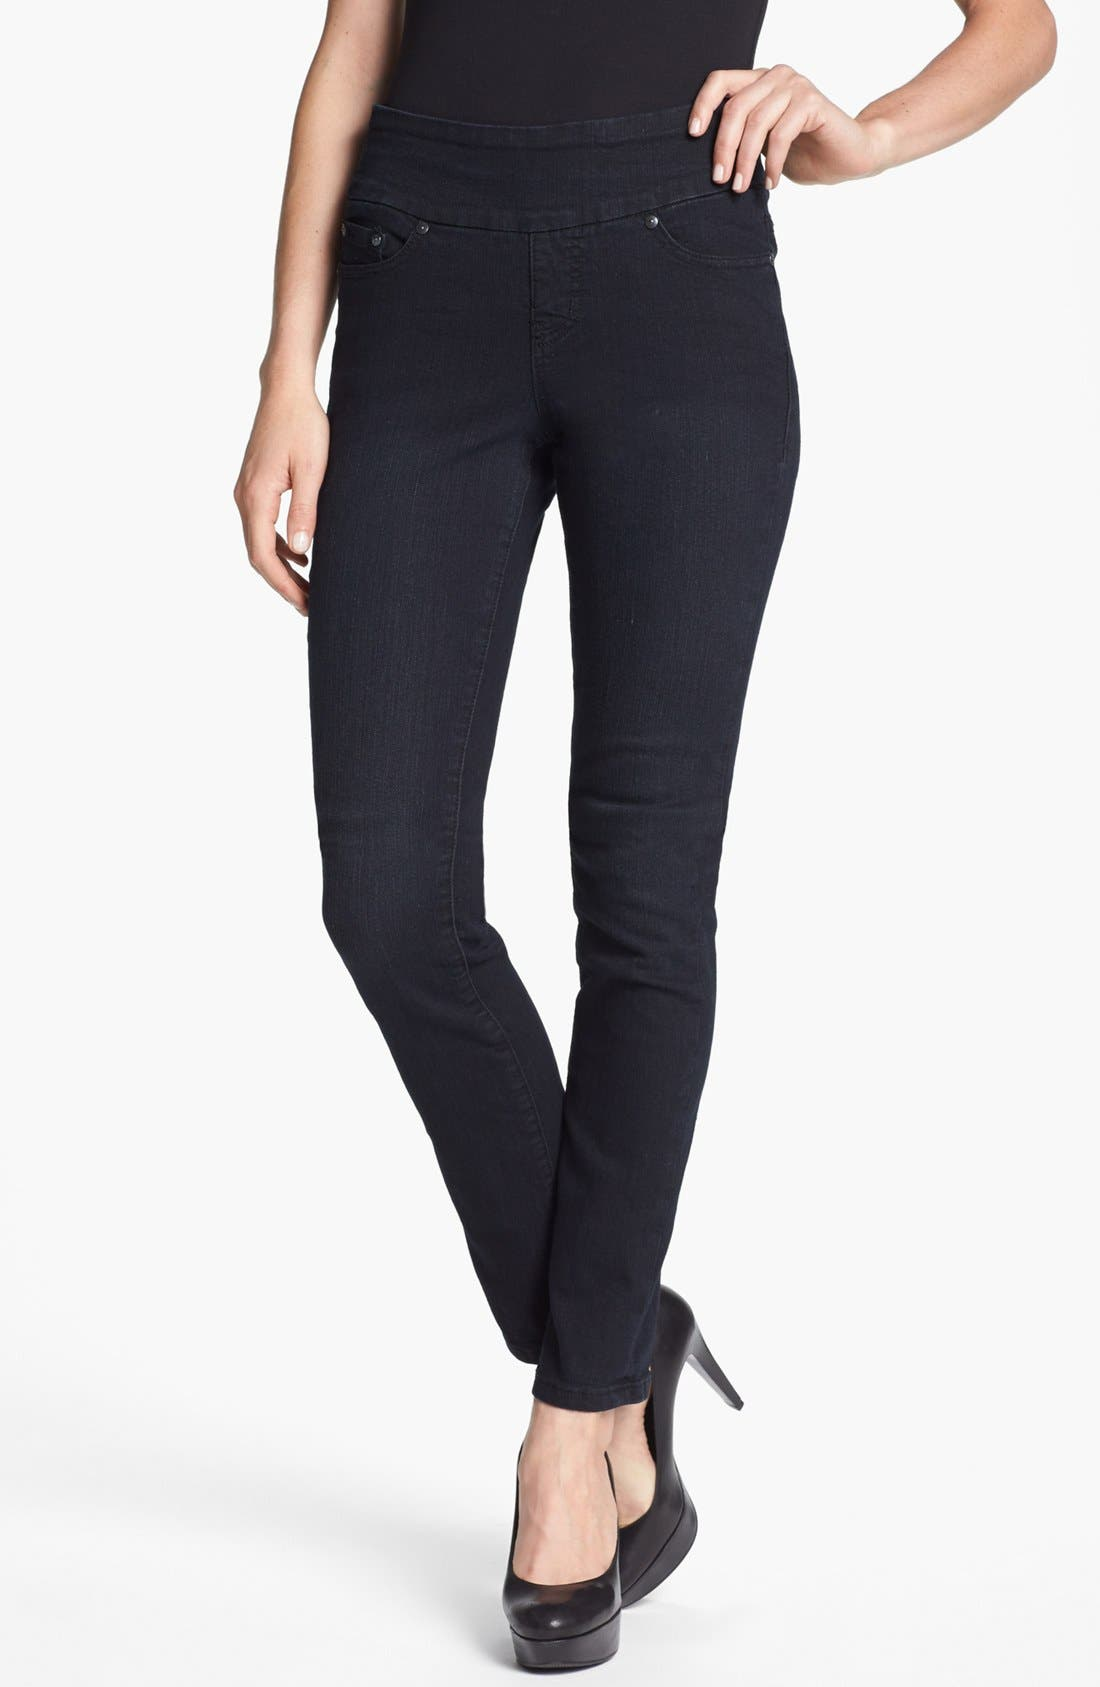 Alternate Image 1 Selected - Jag Jeans 'Malia' Slim Leg Stretch Jeans